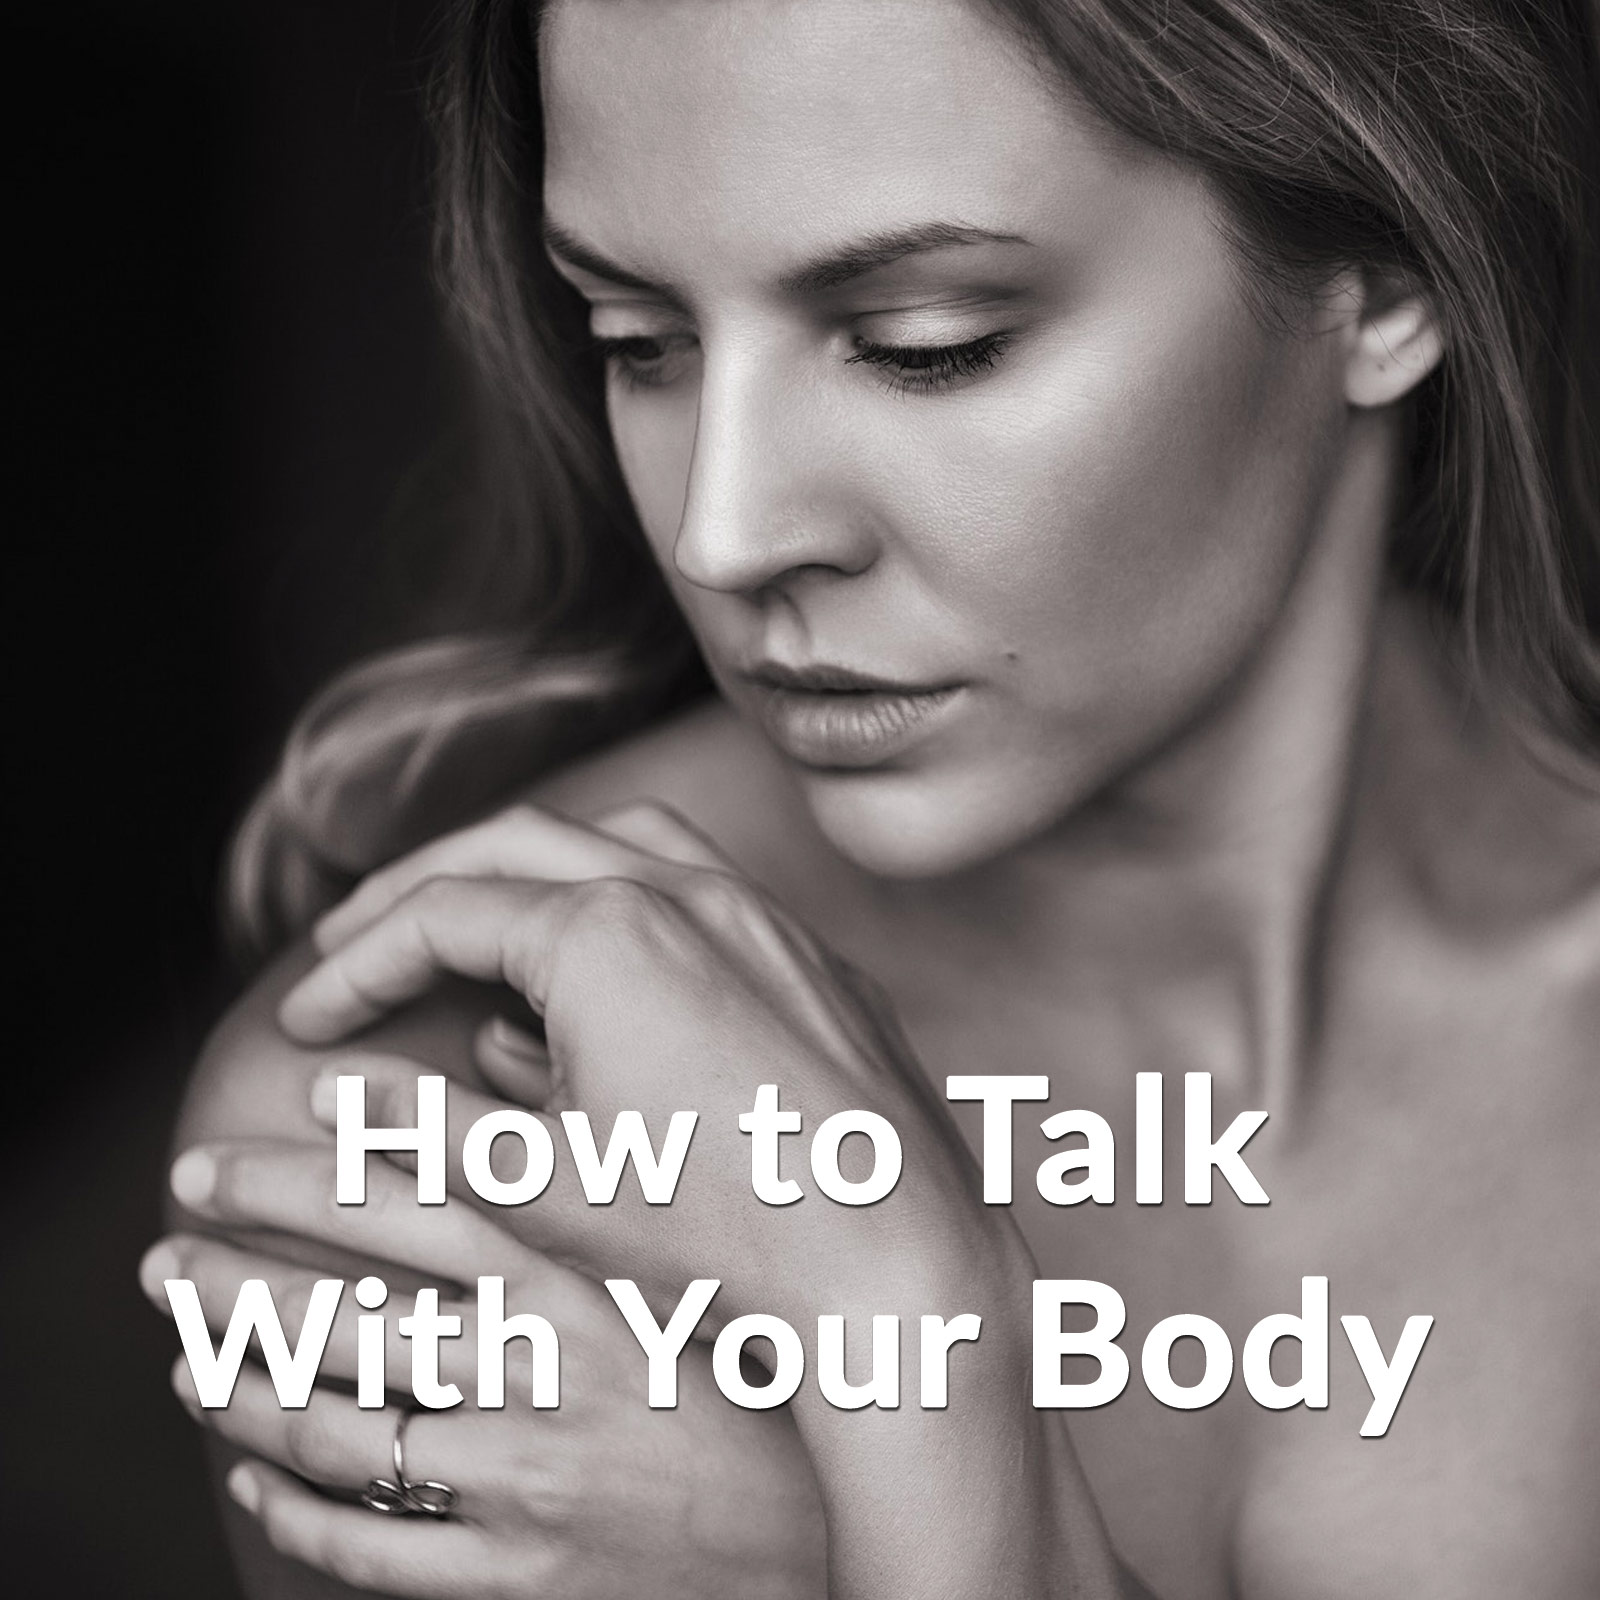 How to Talk With Your Body